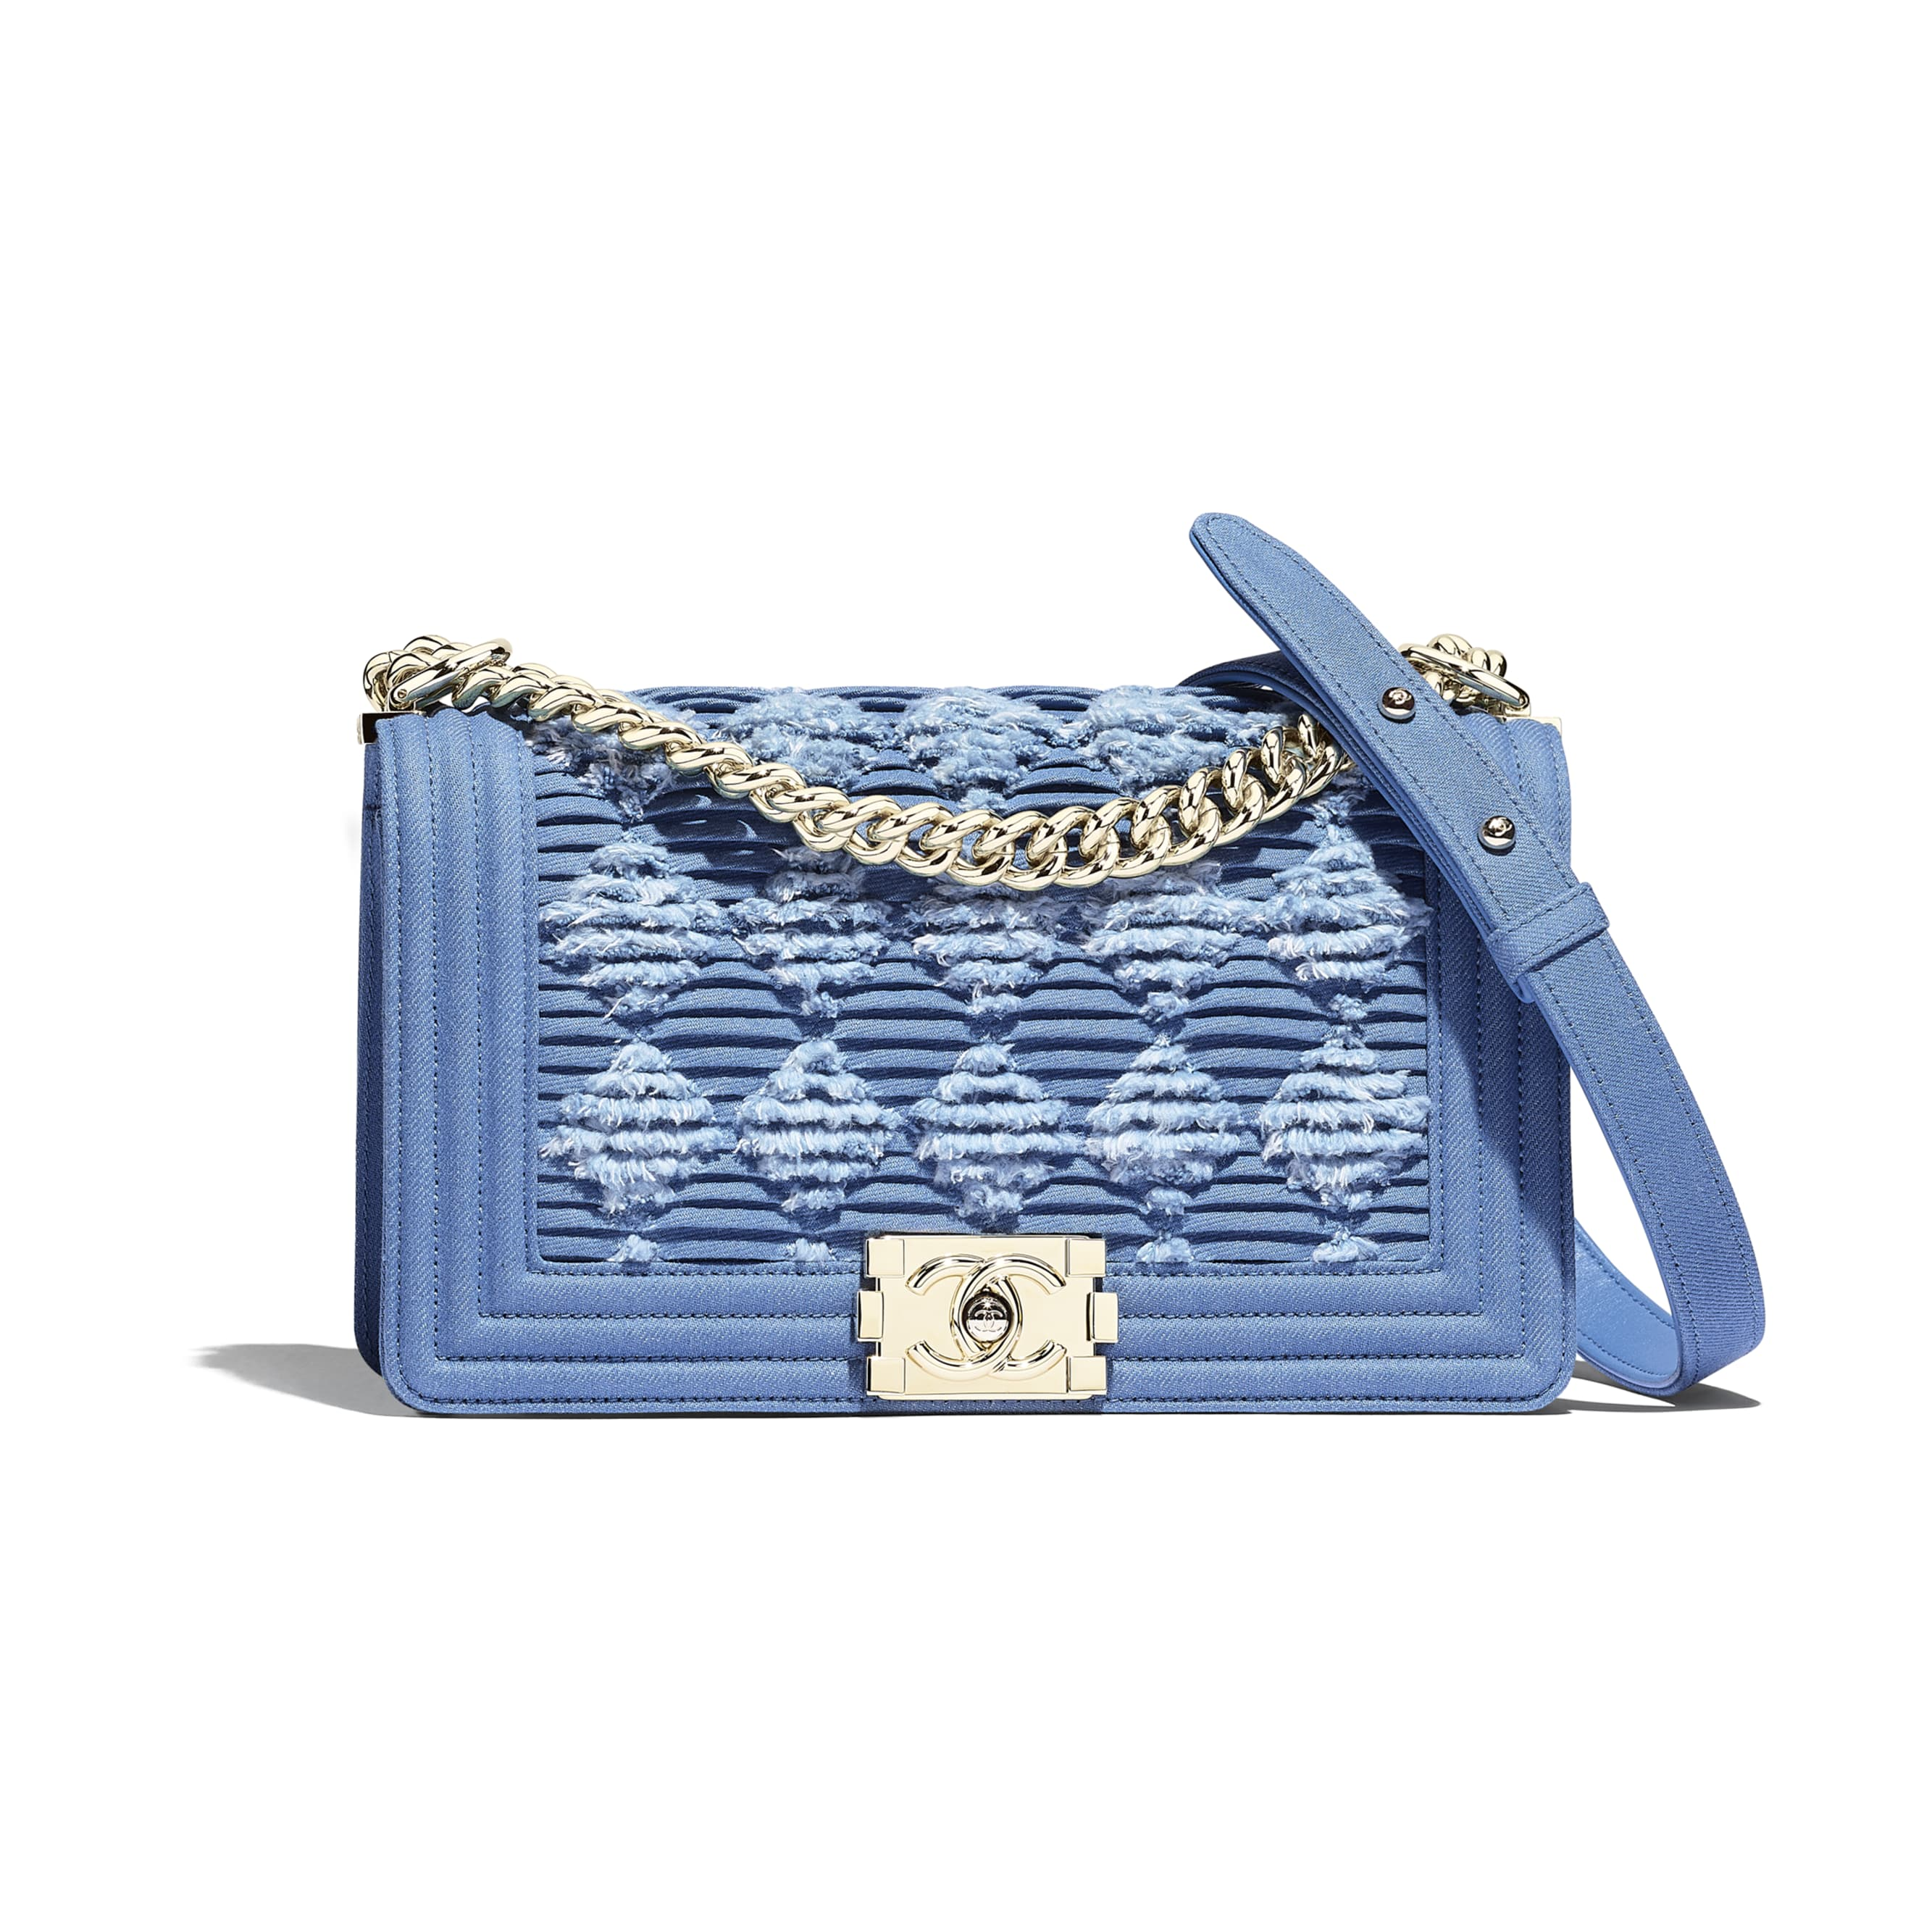 BOY CHANEL Handbag - Light Blue -  Pleated Denim & Gold-Tone Metal - CHANEL - Default view - see standard sized version